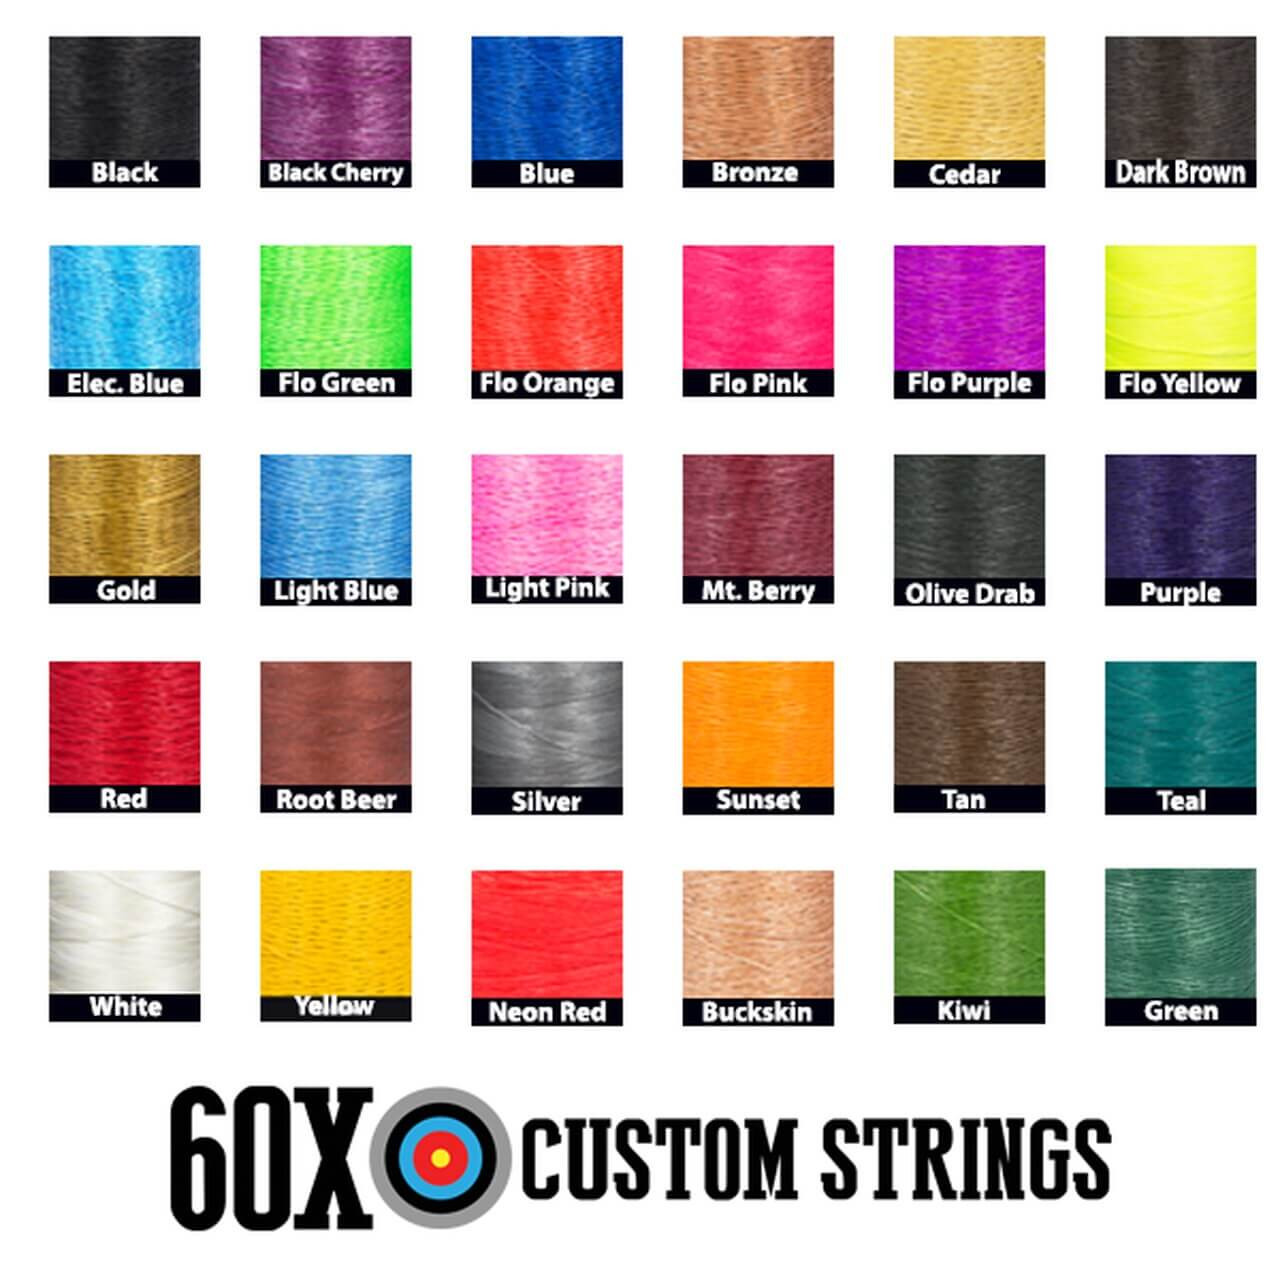 BCY X99 Bowstring Material 1//8# Flo Pink  Bow String Making